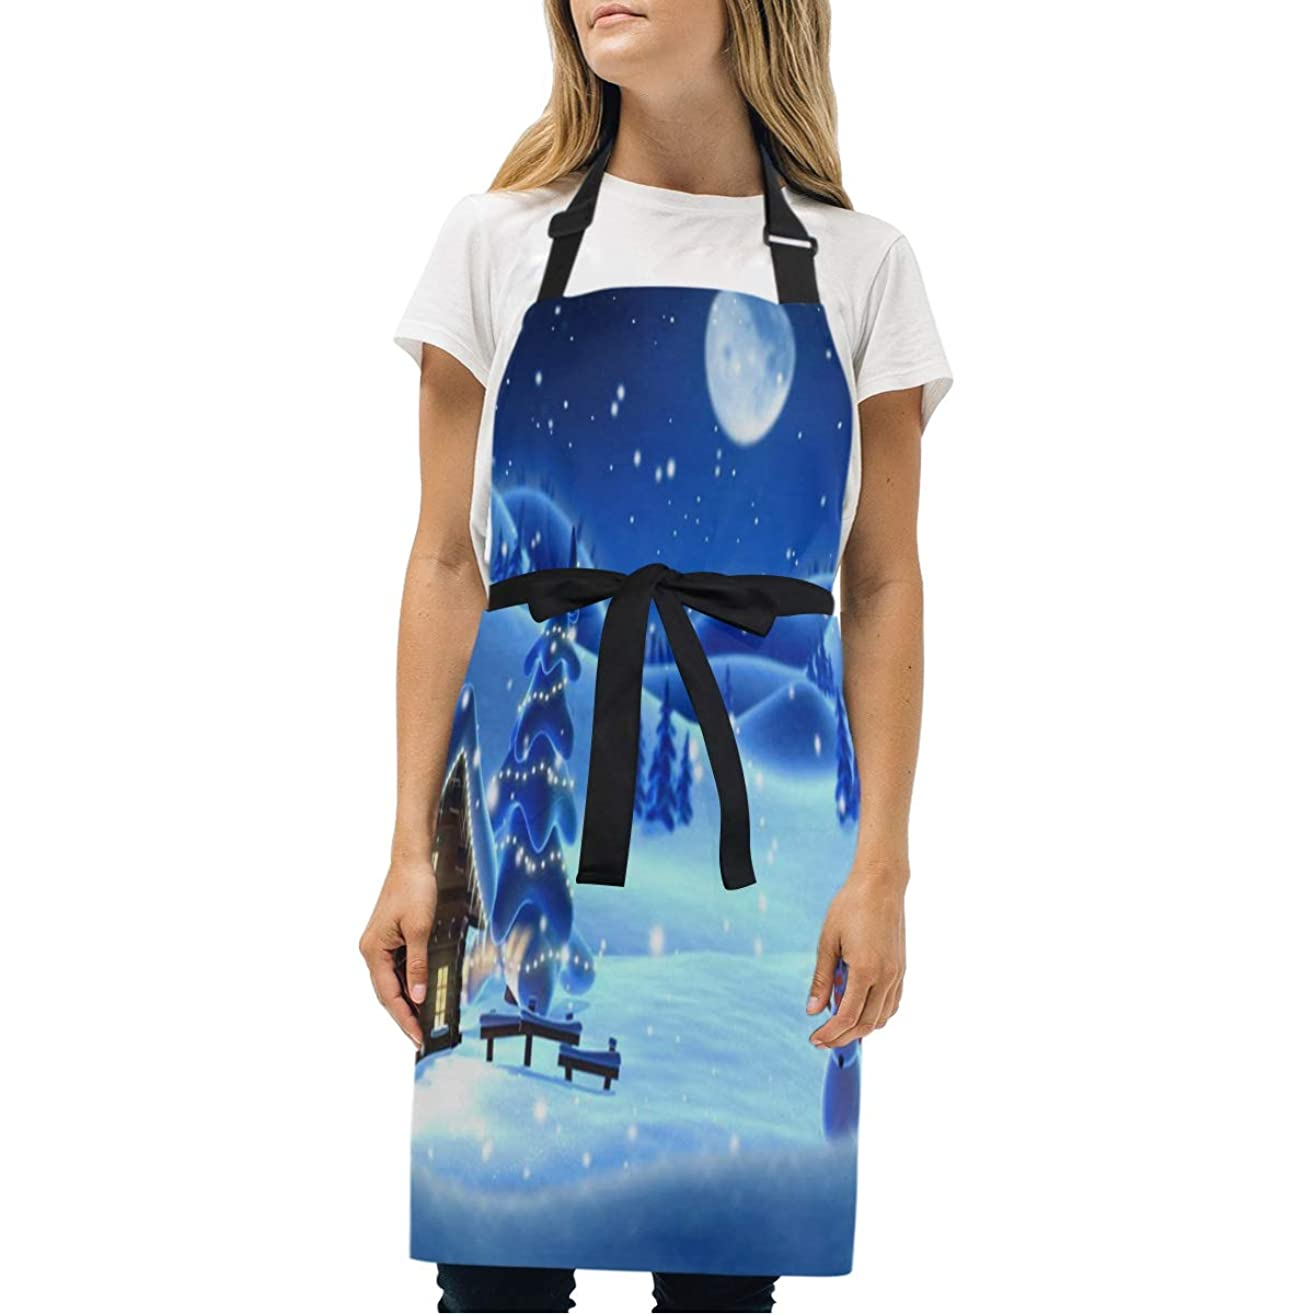 HJudge Womens Aprons Winter Snow Live Kitchen Bib Aprons with Pockets Adjustable Buckle on Neck